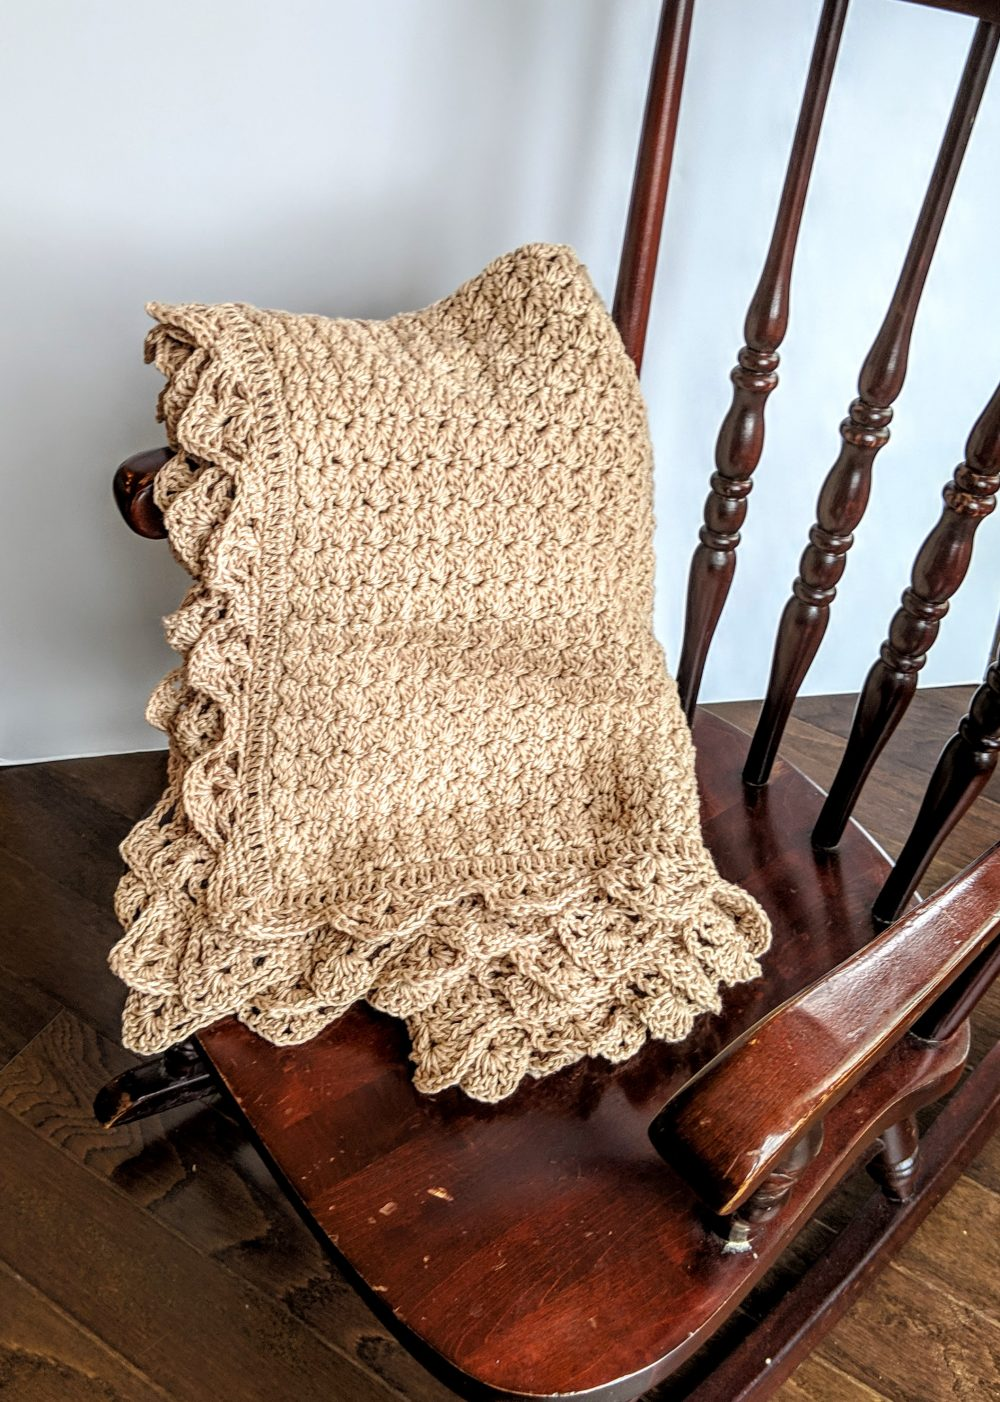 2019 Latest Design Bundle Of Hand Crocheted Baby Blankets Other Newborn-5t Girls Clothes